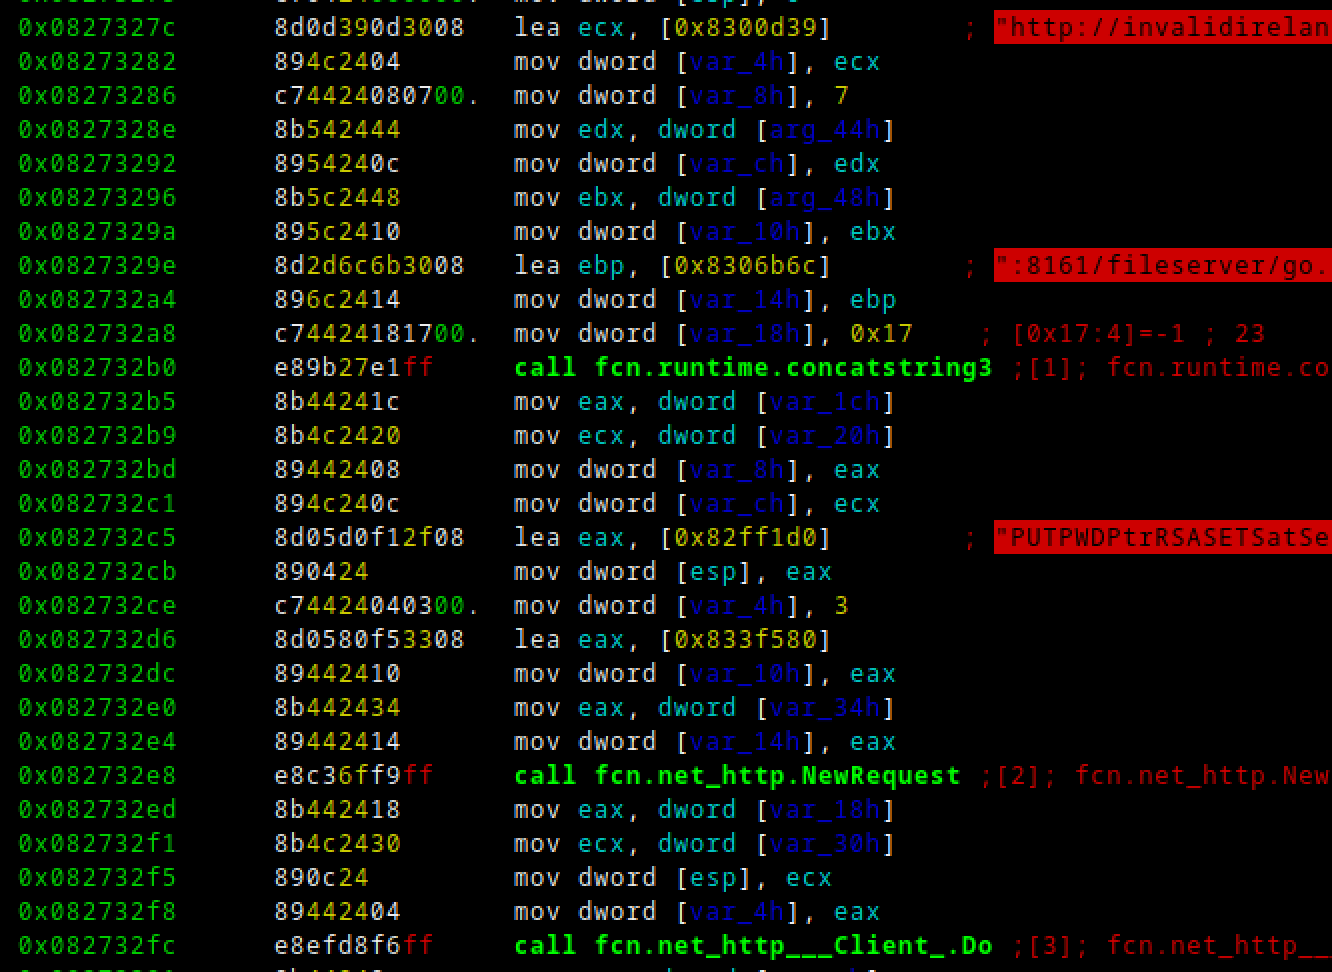 """LSD malware constructing a """"PUT"""" request to upload the crontab file to """"/fileserver/go.txt"""" on the ActiveMQ host."""